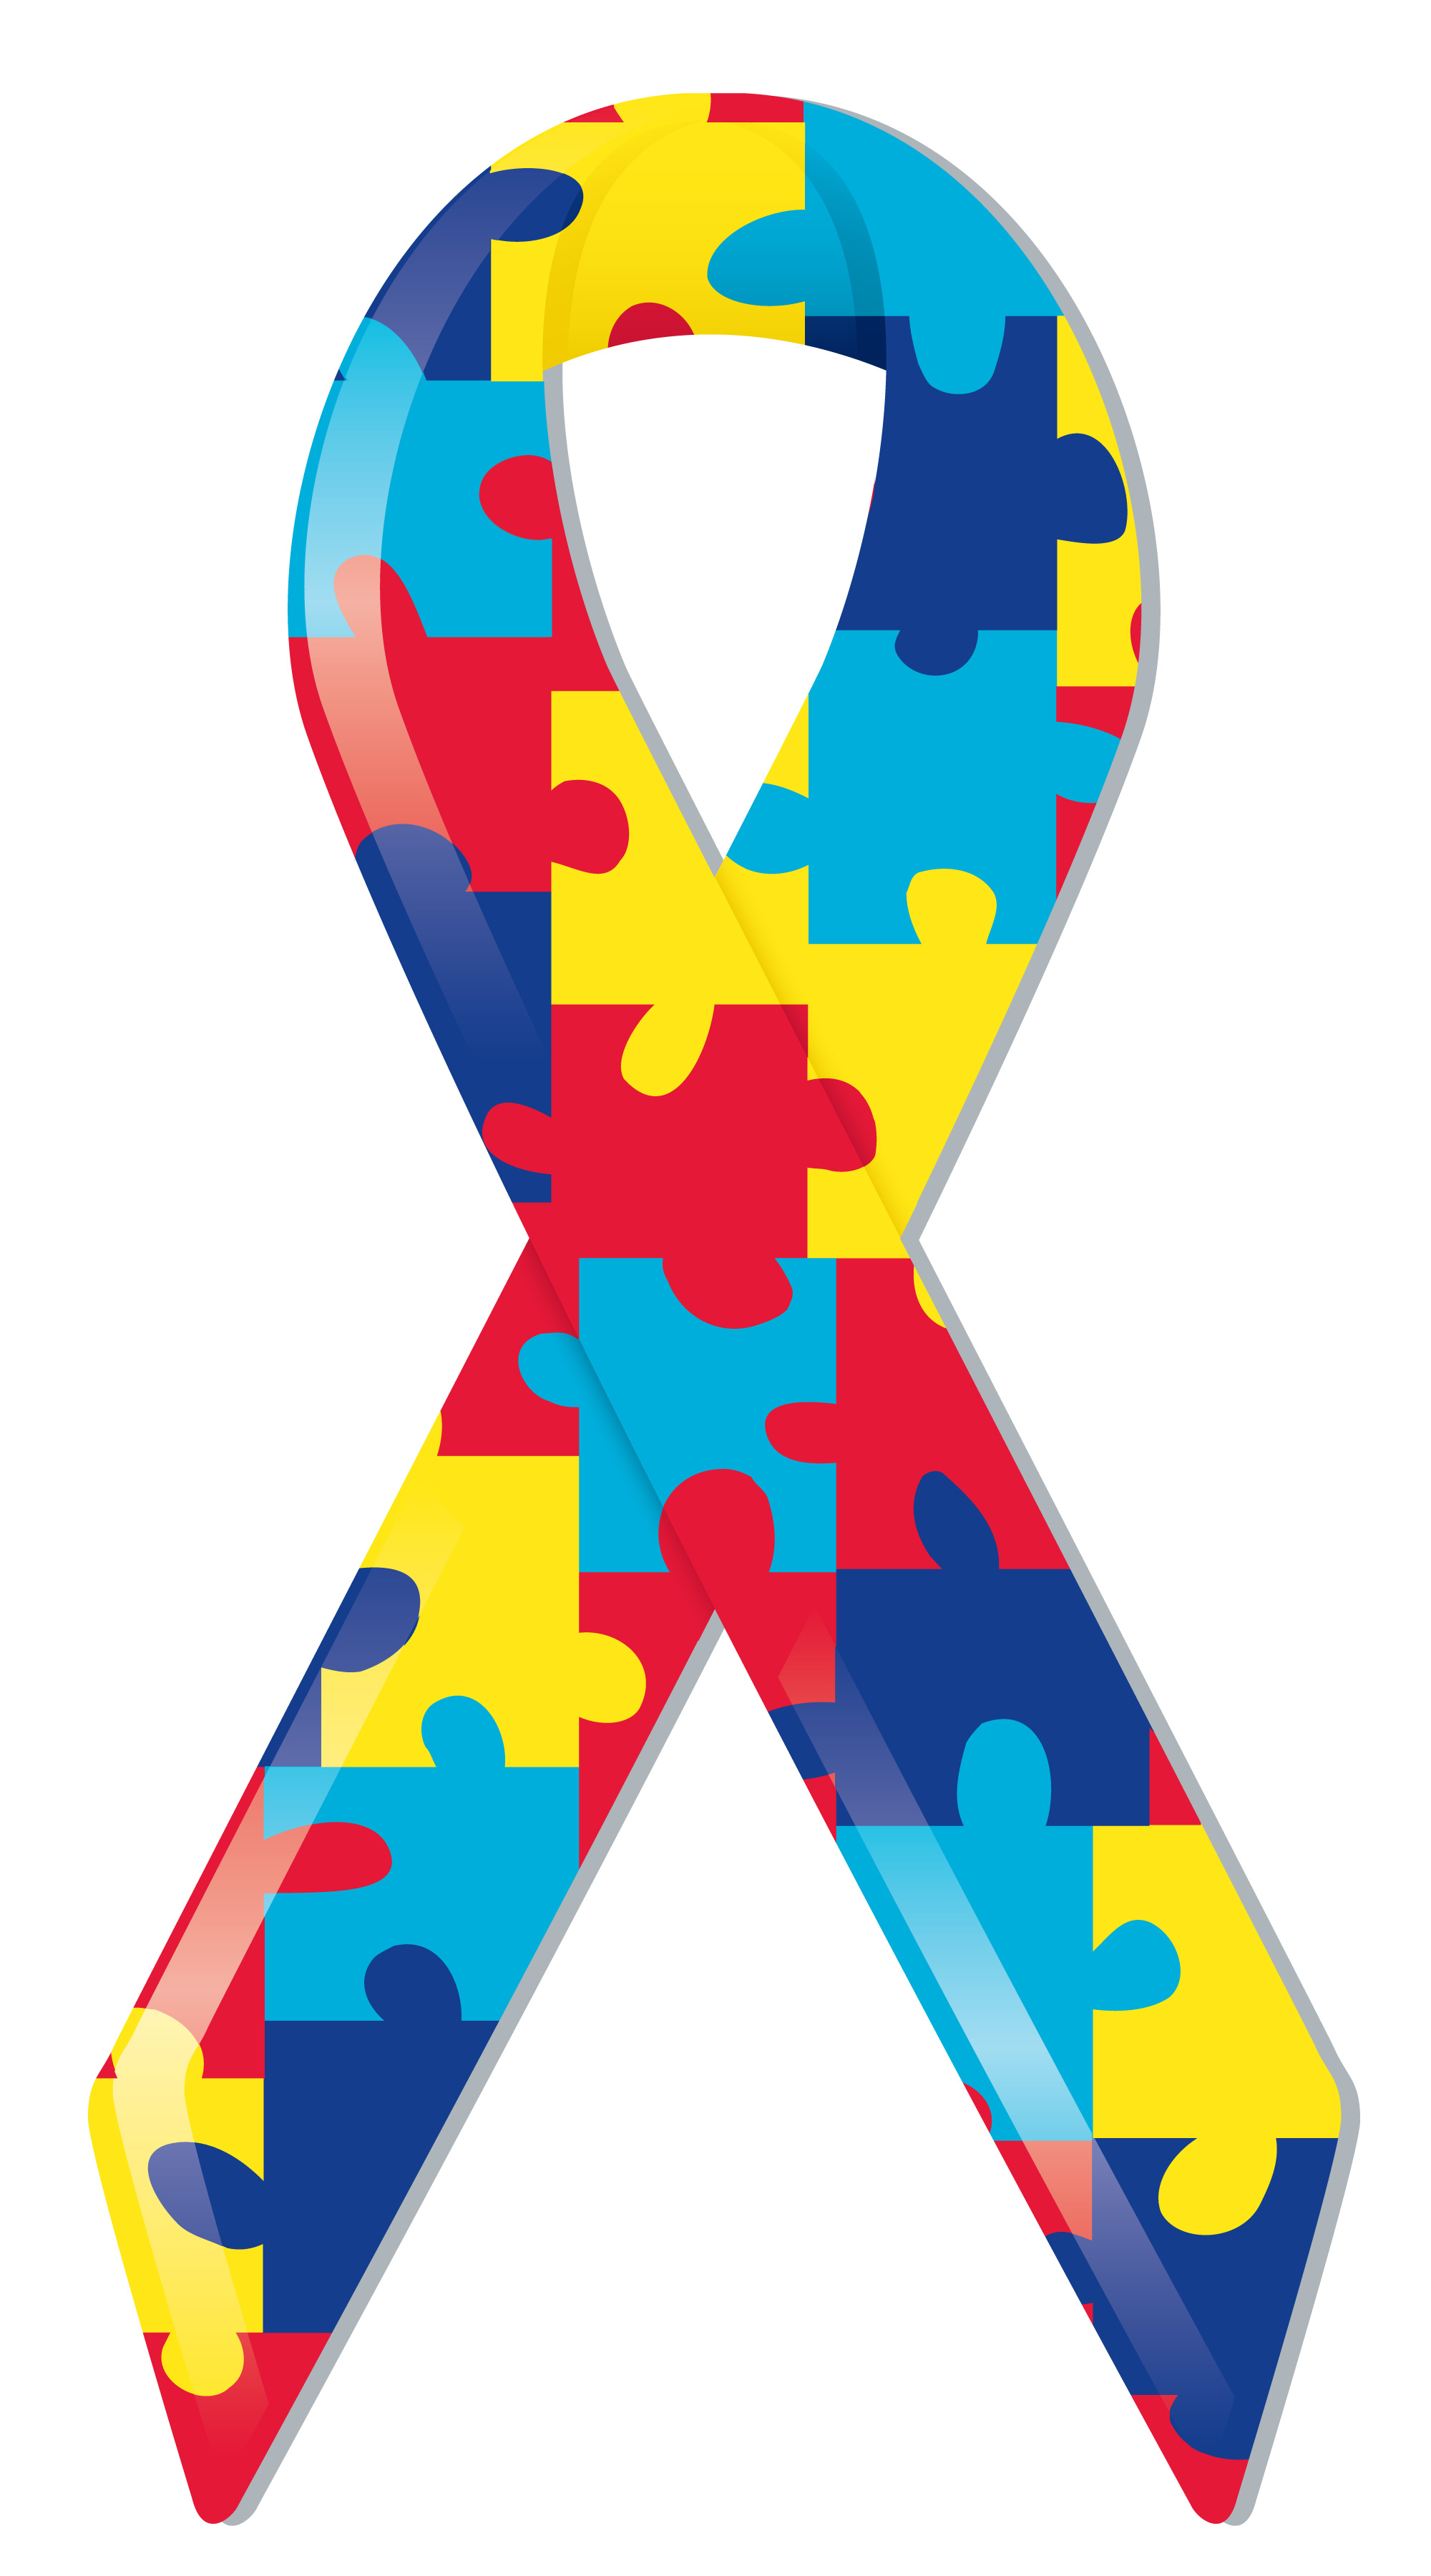 Free autism awareness ribbon clipart image download Autism clipart asperger, Autism asperger Transparent FREE for ... image download